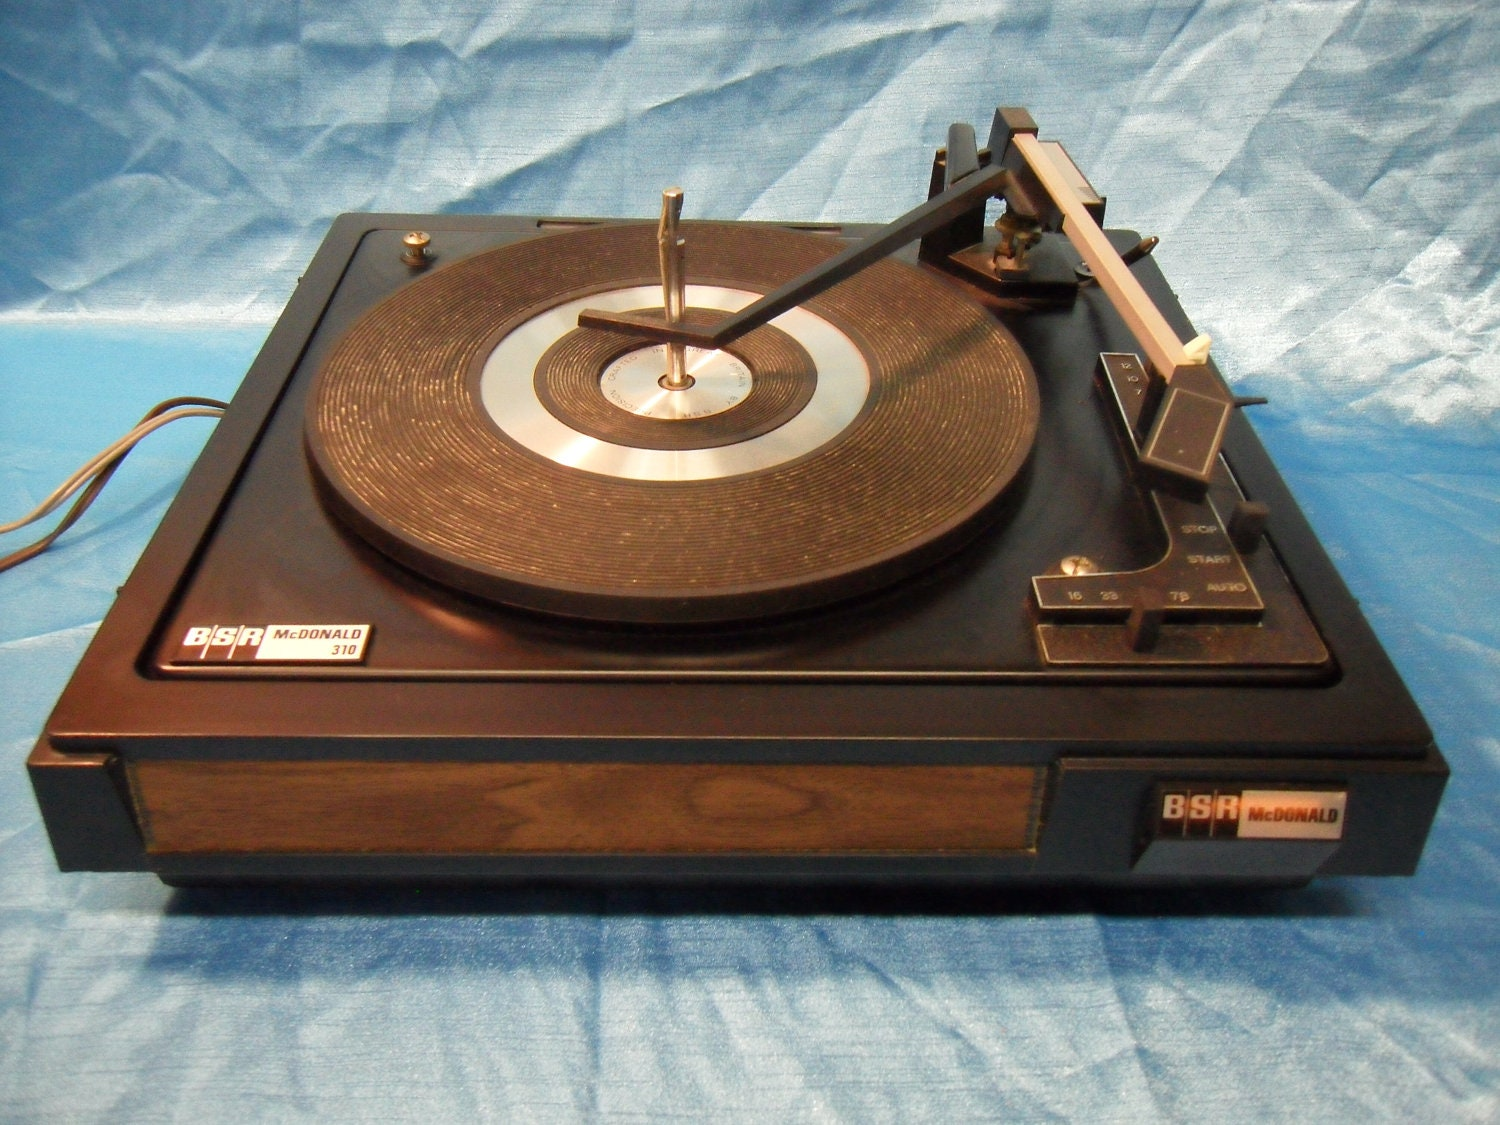 Vintage Bsr Mcdonald 310 Turntable Budget Entry Level